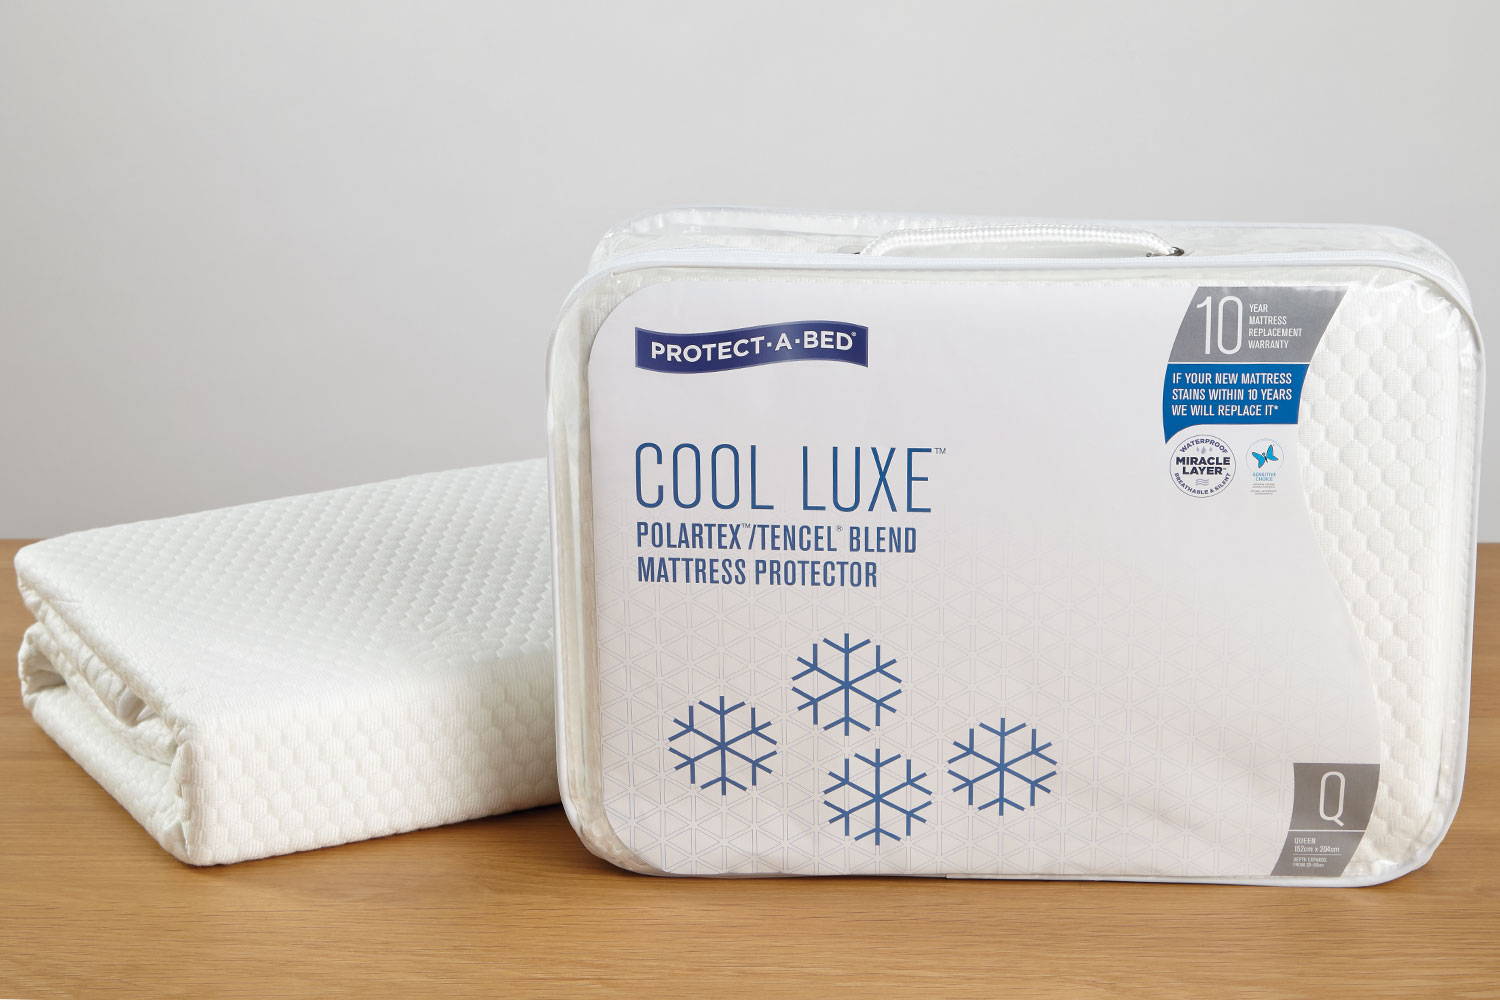 Cool Luxe Mattress Protector by Protect-A-Bed at Harvey Norman New Zealand